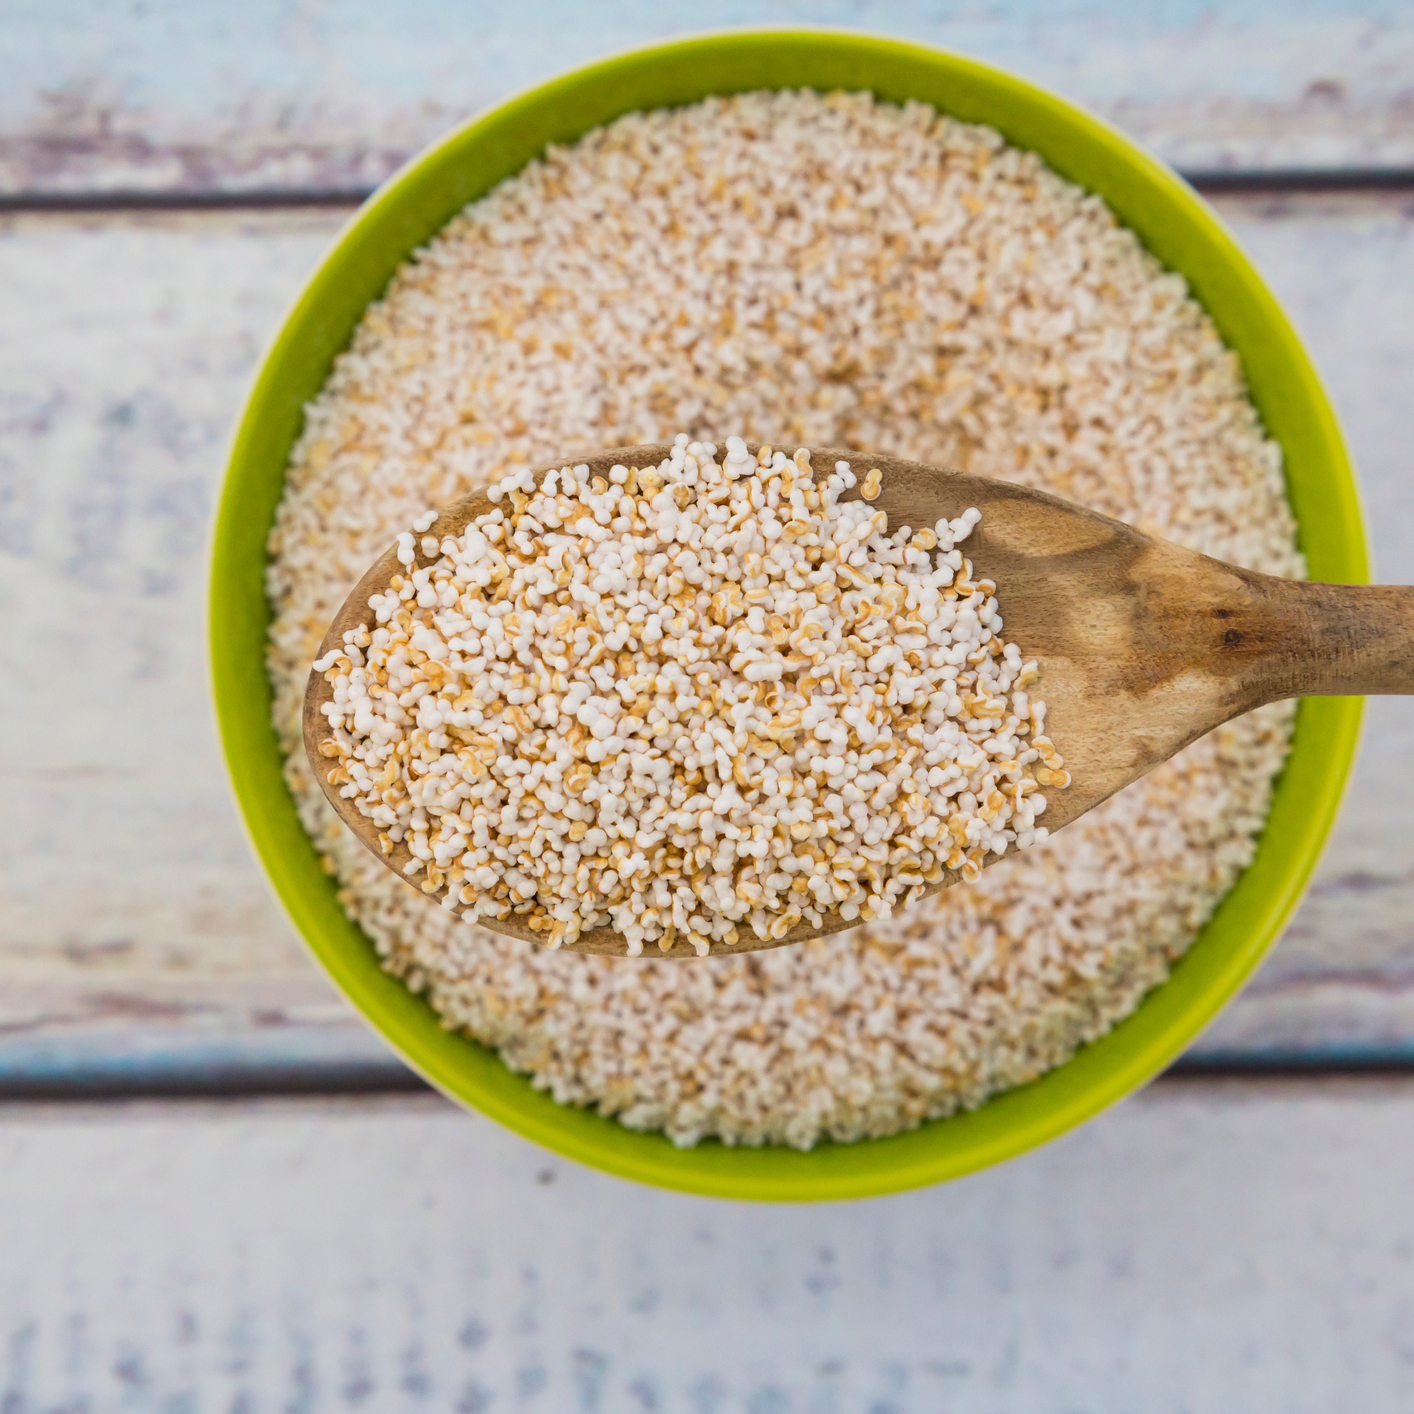 Types of grains - Amaranth (picture)